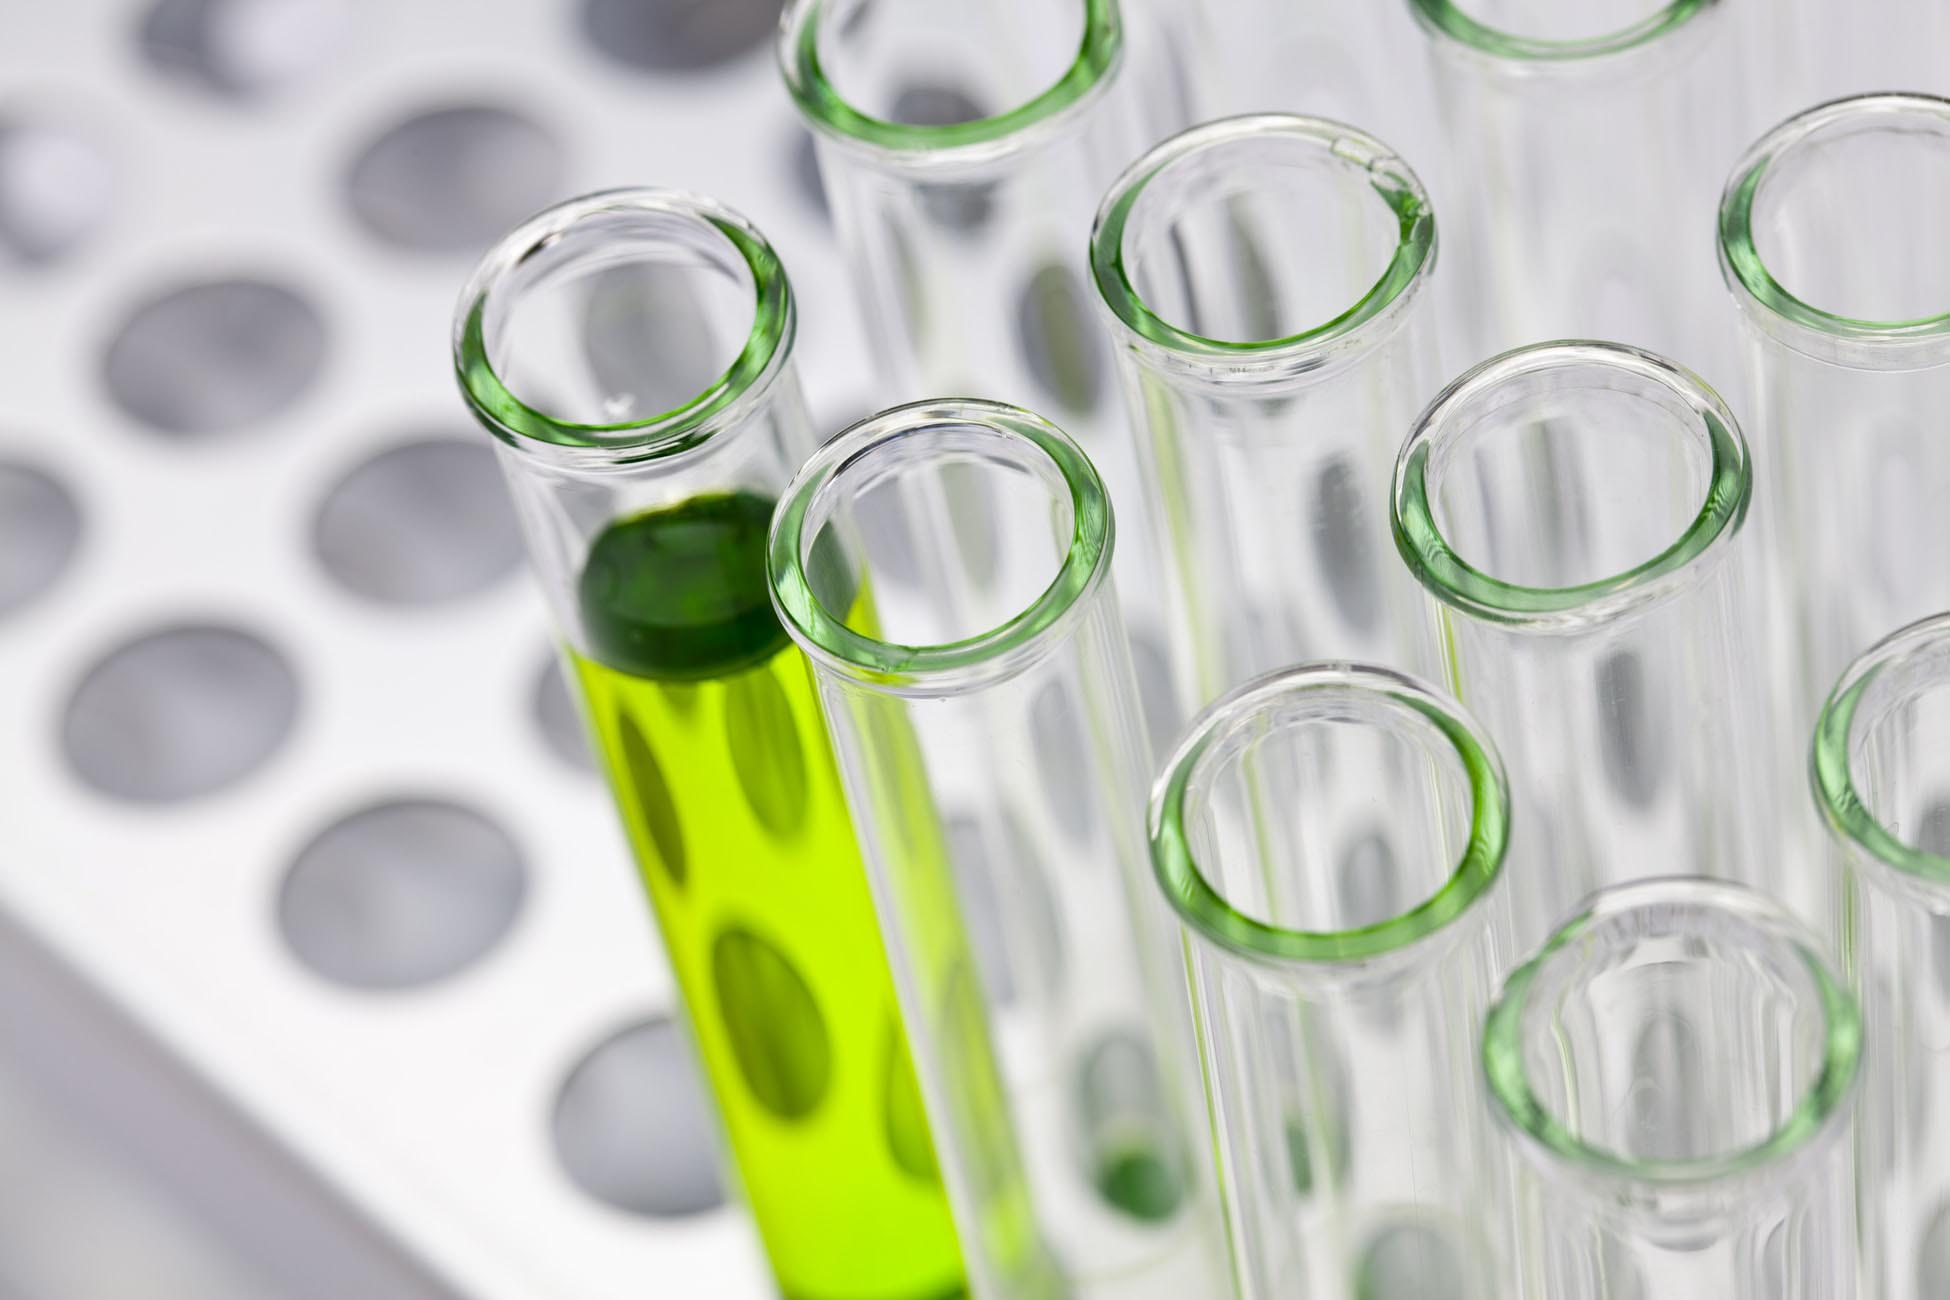 Test Tube in Rack with Green Liquid